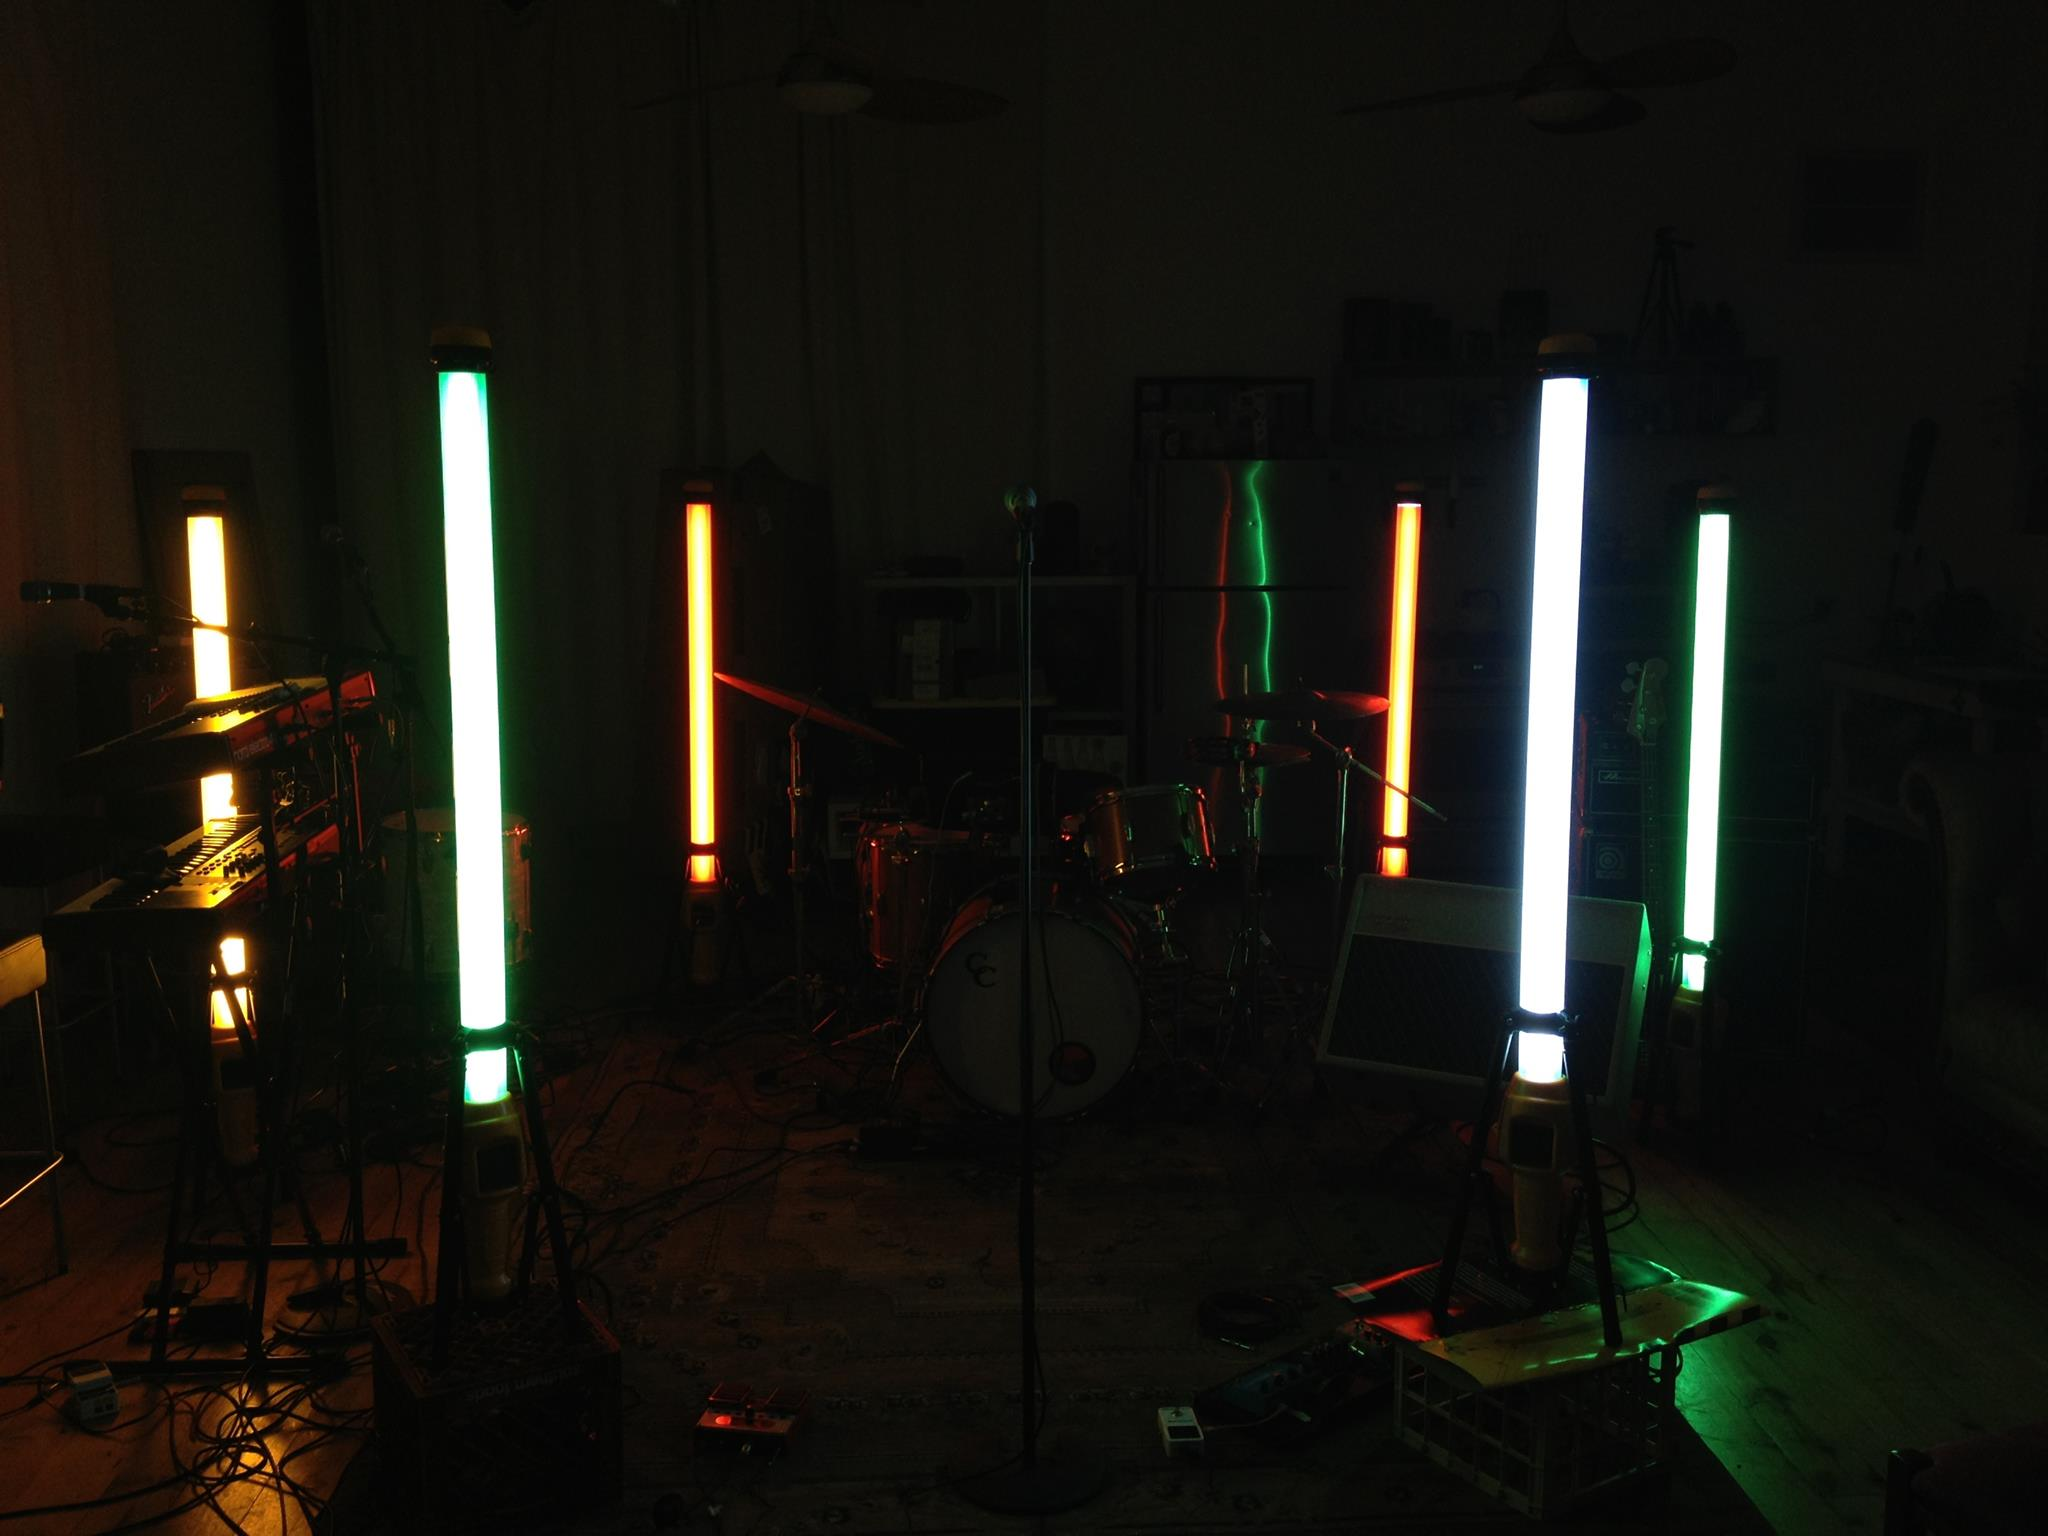 lights in the rehearsal room